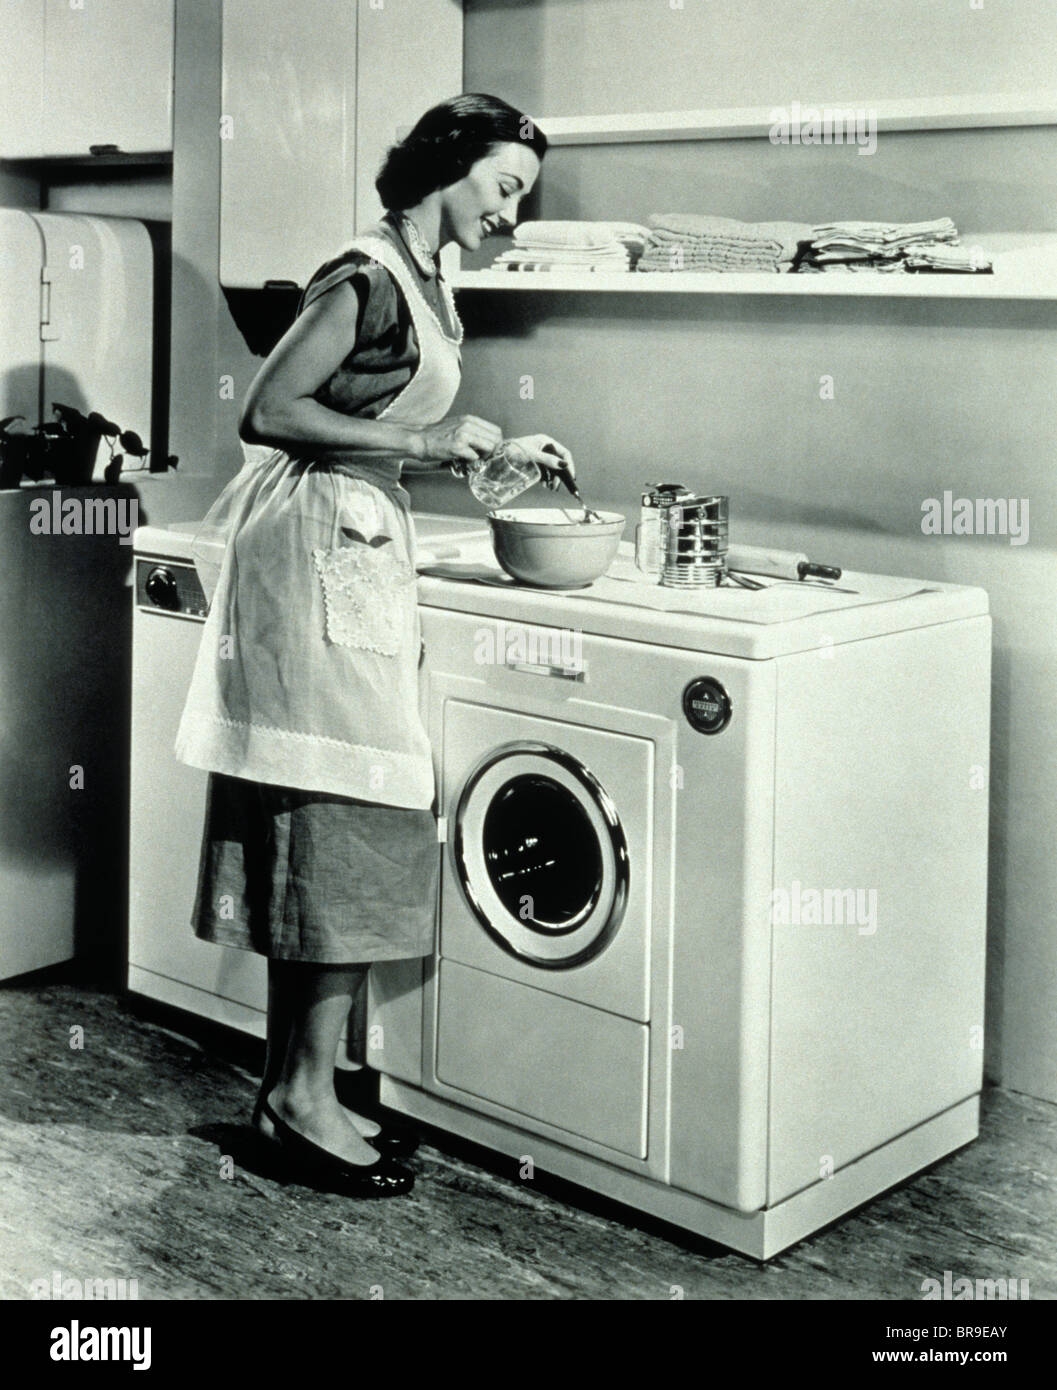 1950s Housewife Using Top Of Washing Machine Dryer As